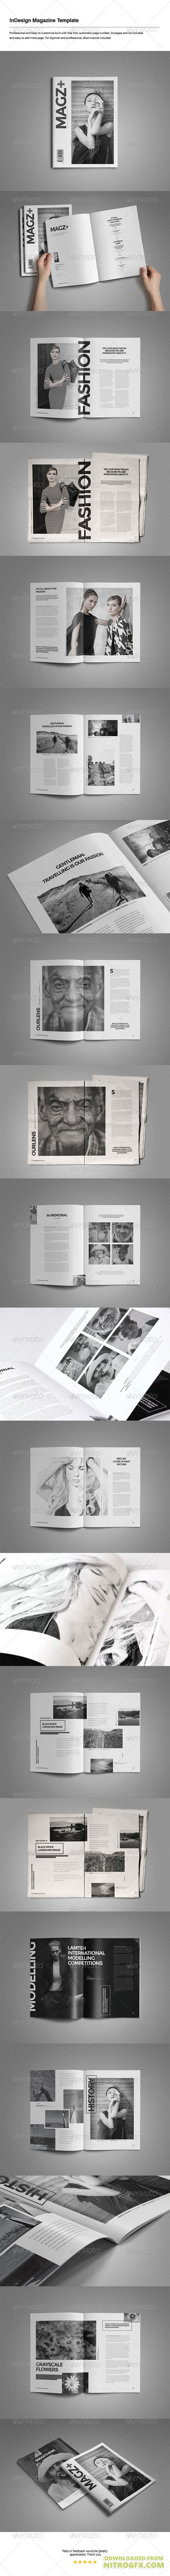 Indesign Magazine Template 8226069